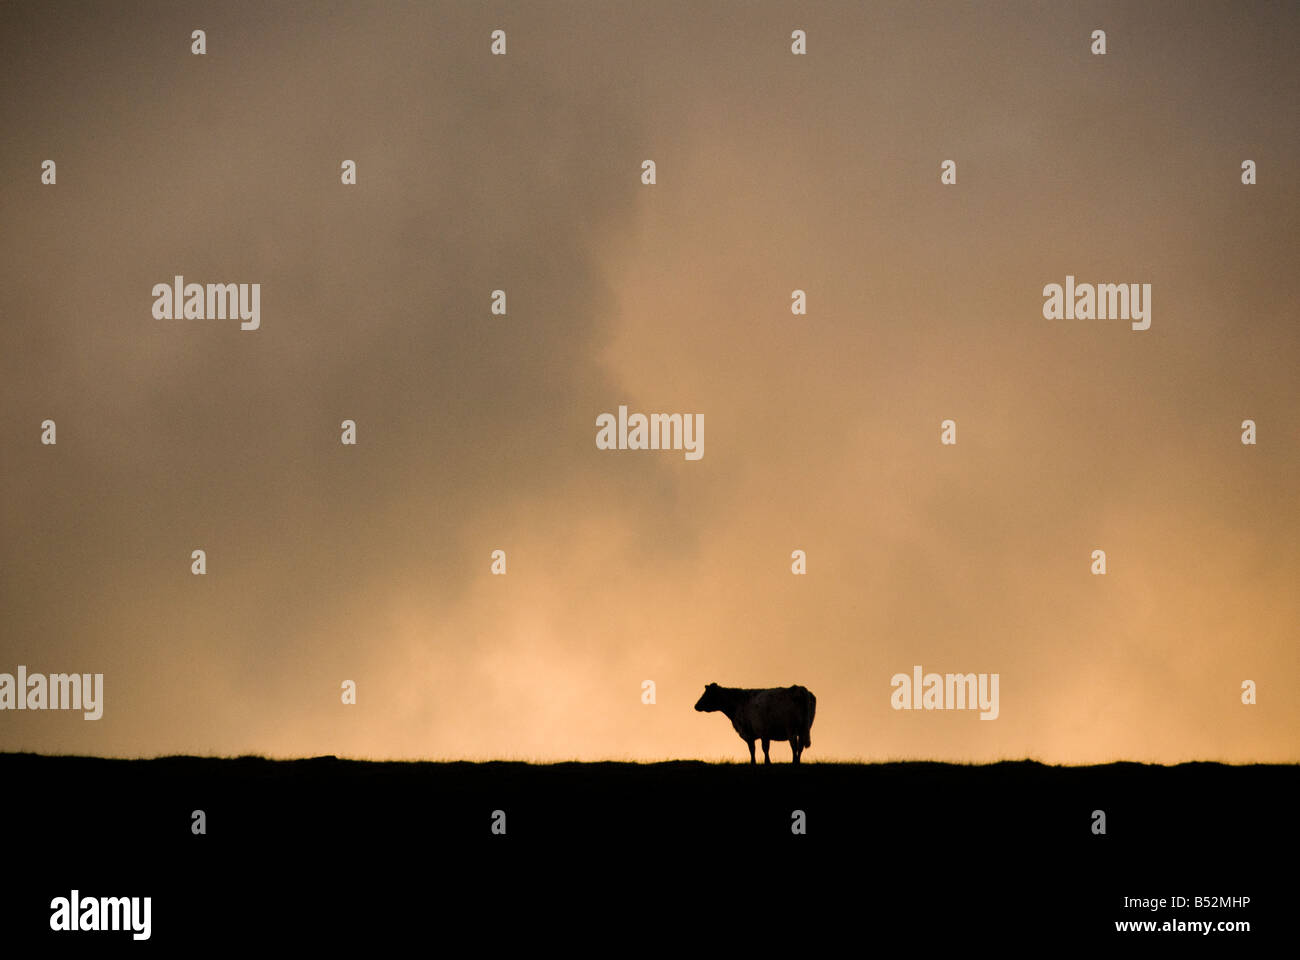 Cow silhouetted - Stock Image